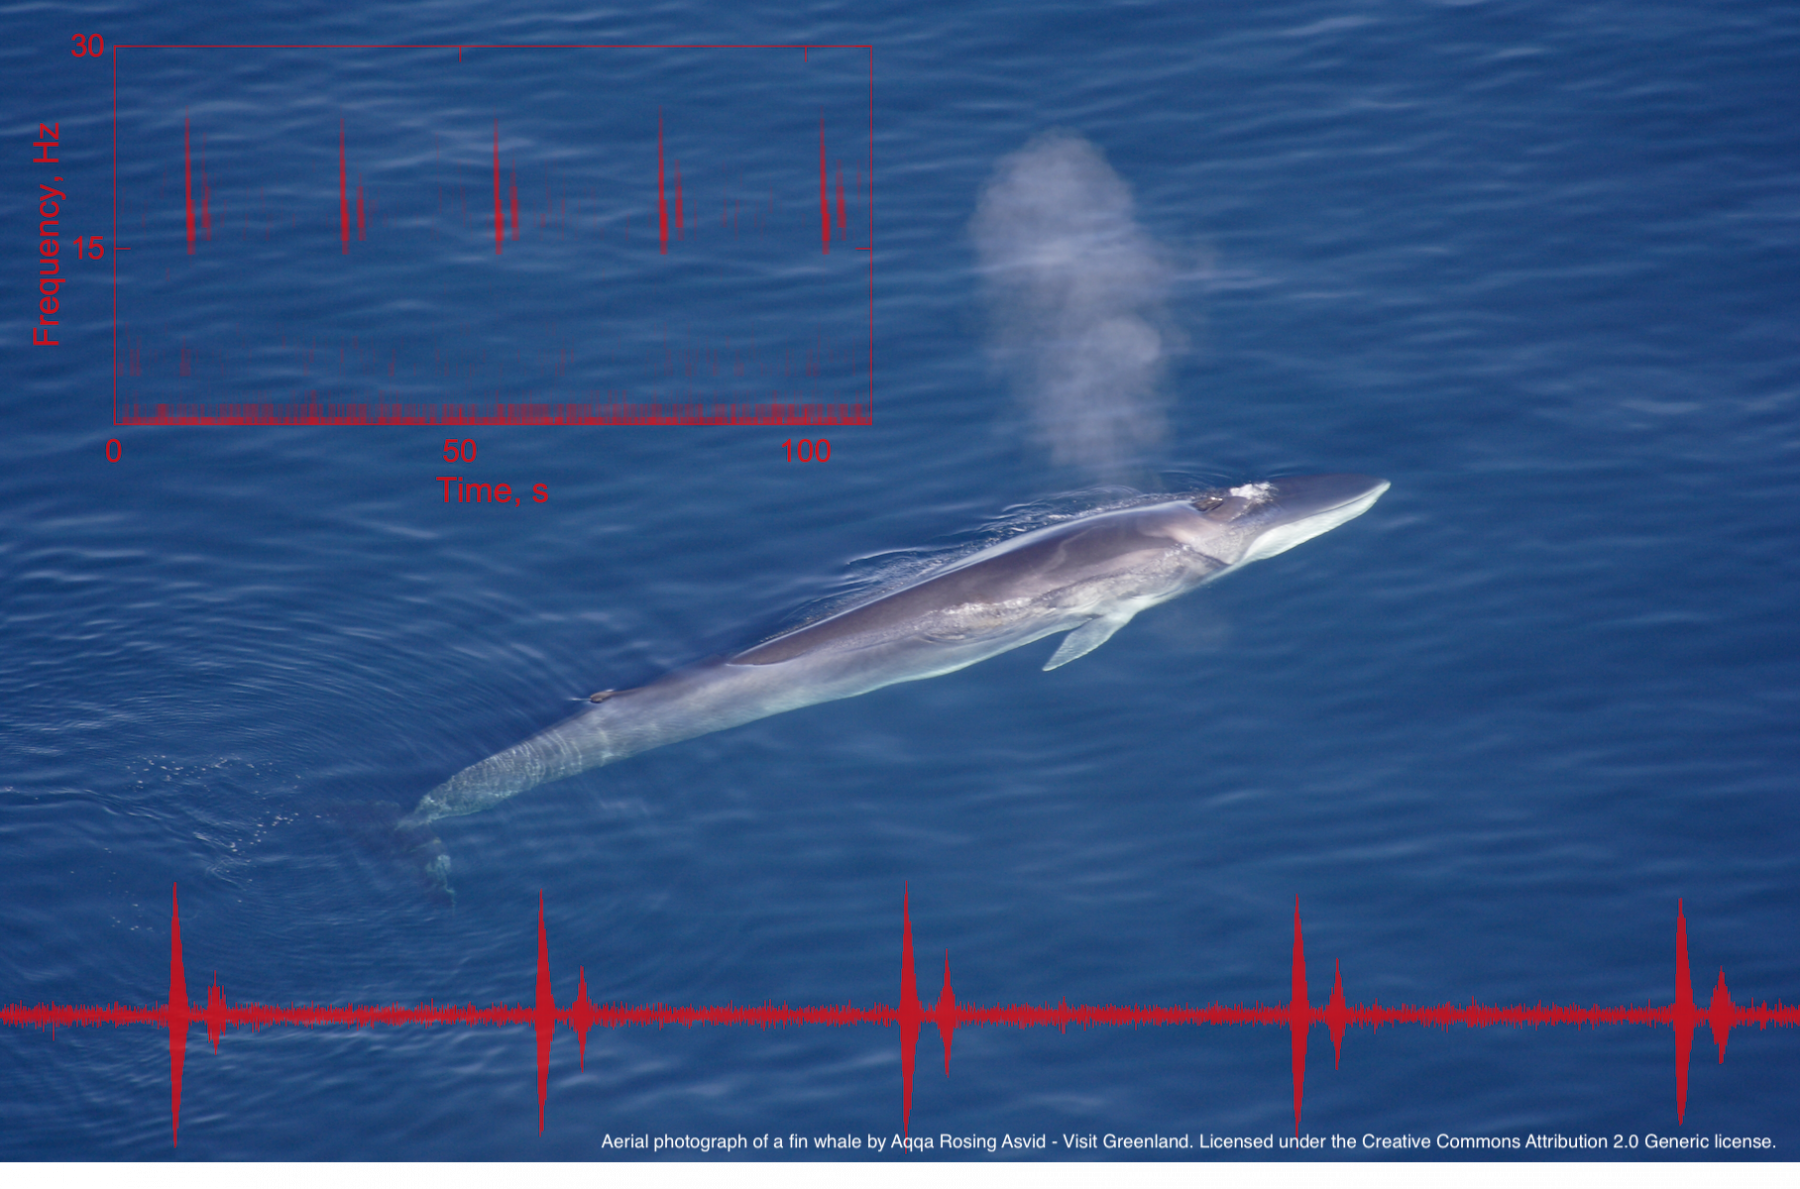 aerial photo of a whale spouting